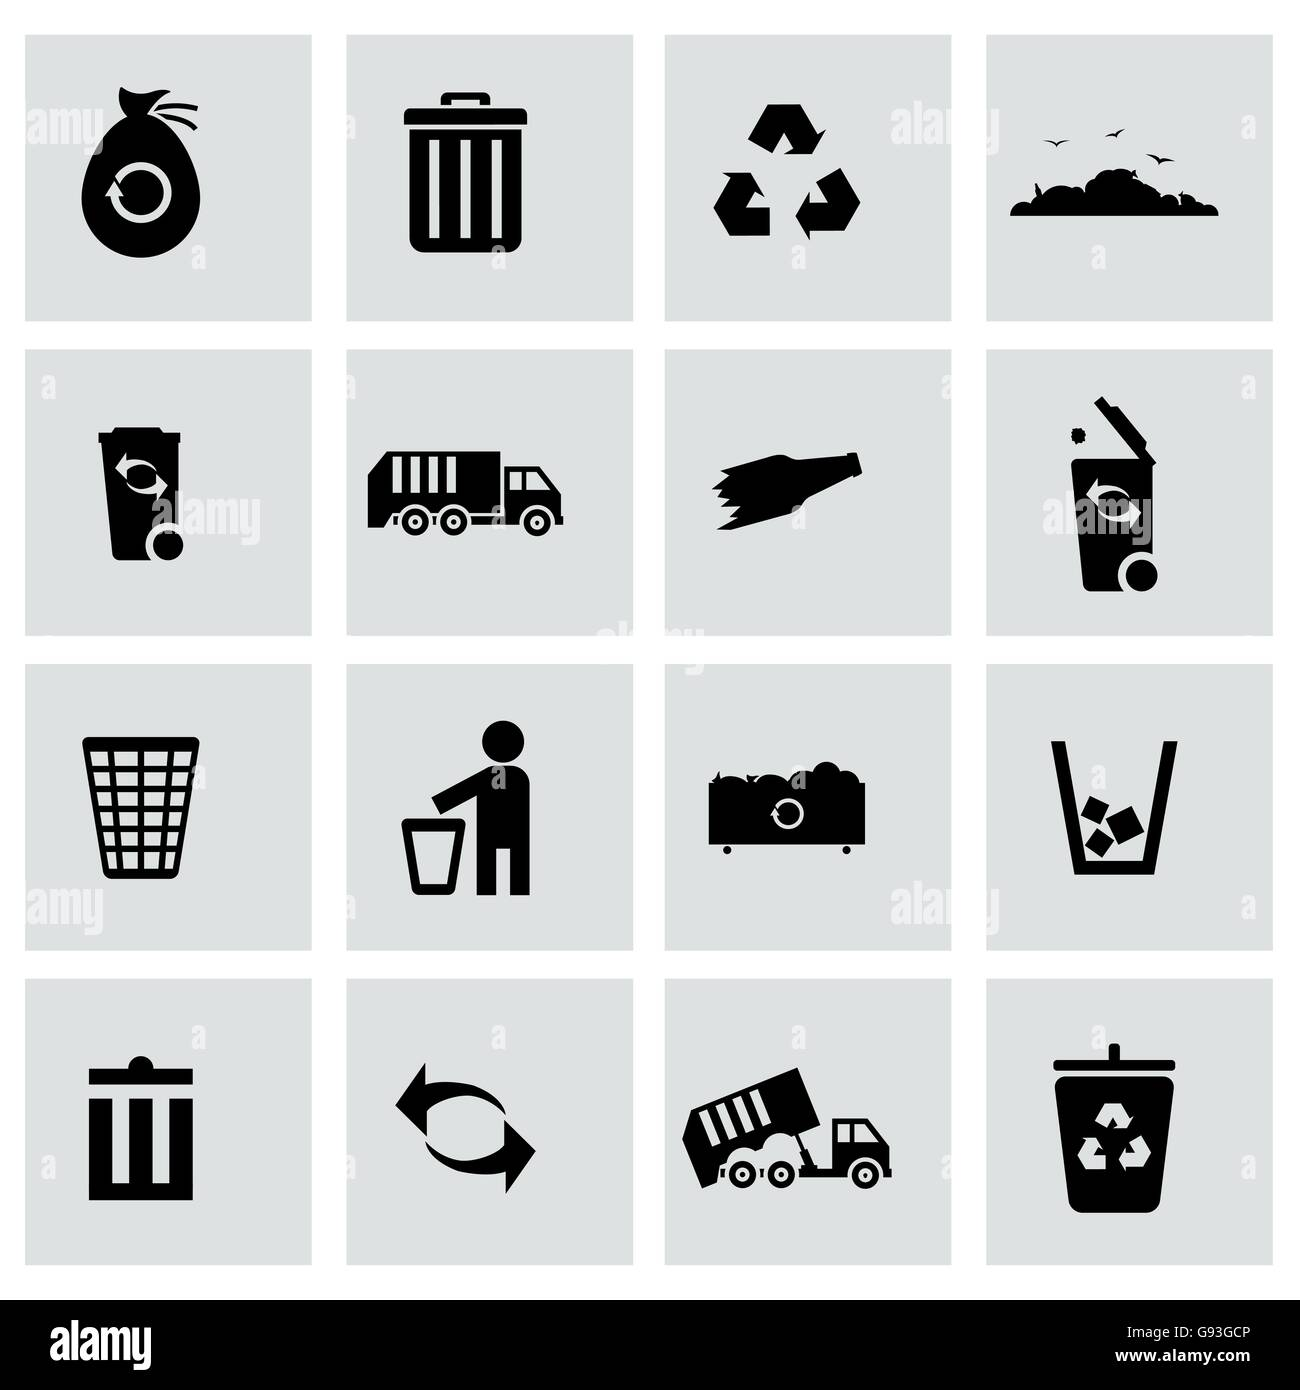 Vector black garbage icons set - Stock Vector